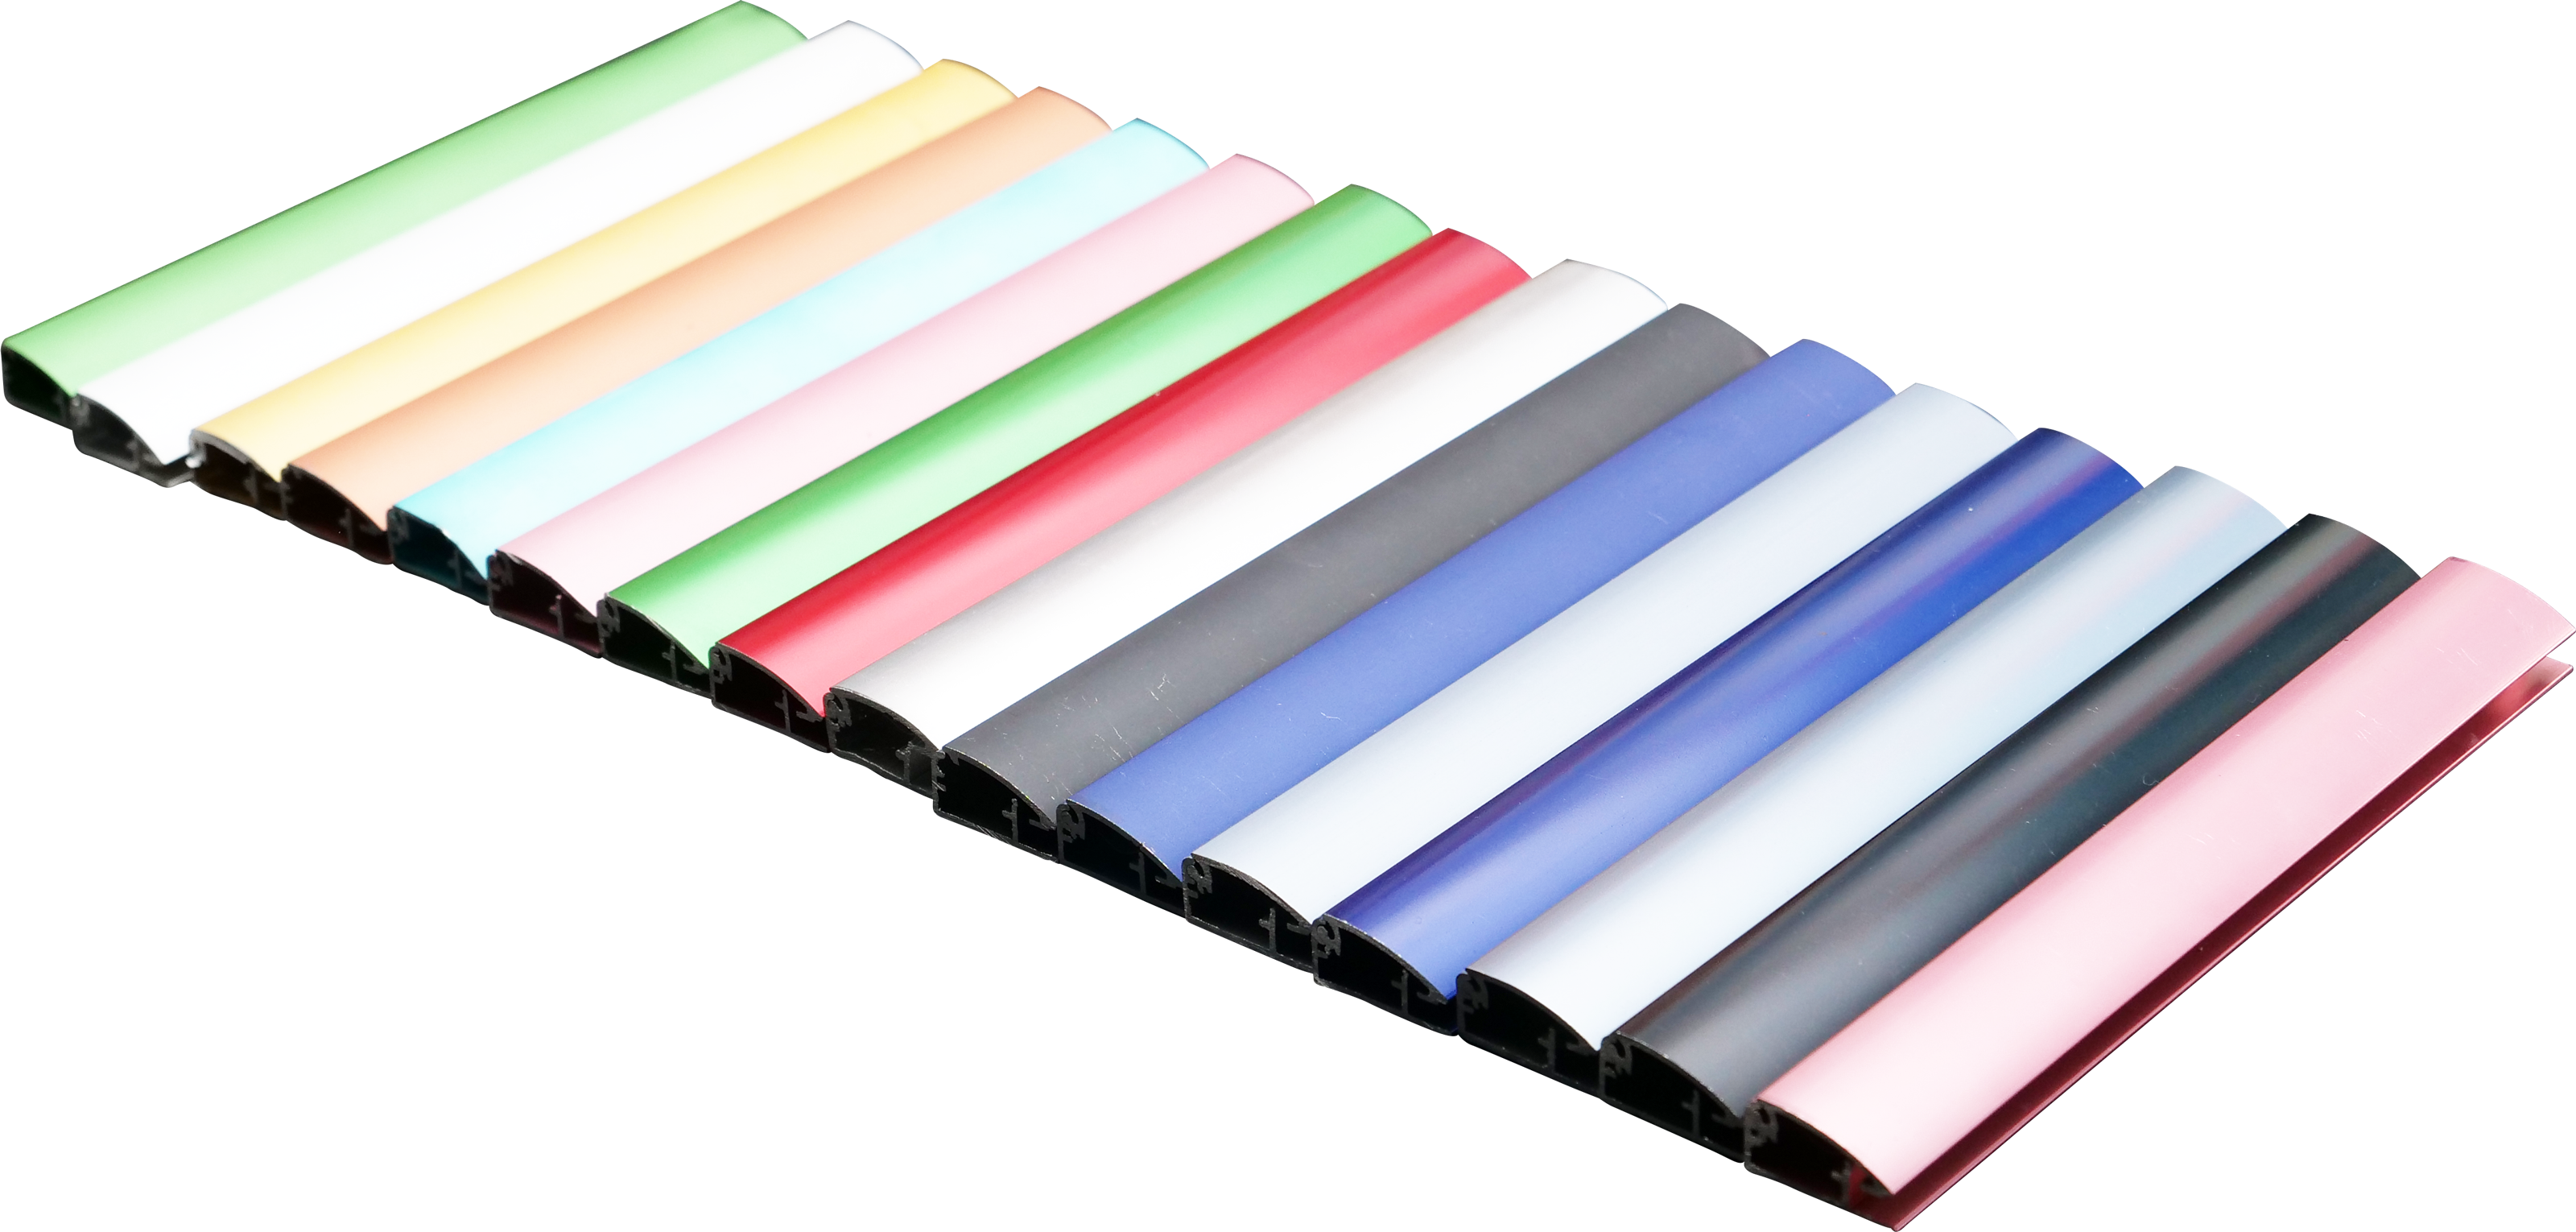 c837f570cb57 Can be customised to any colour or finish to match the installation  environment or client requirements.